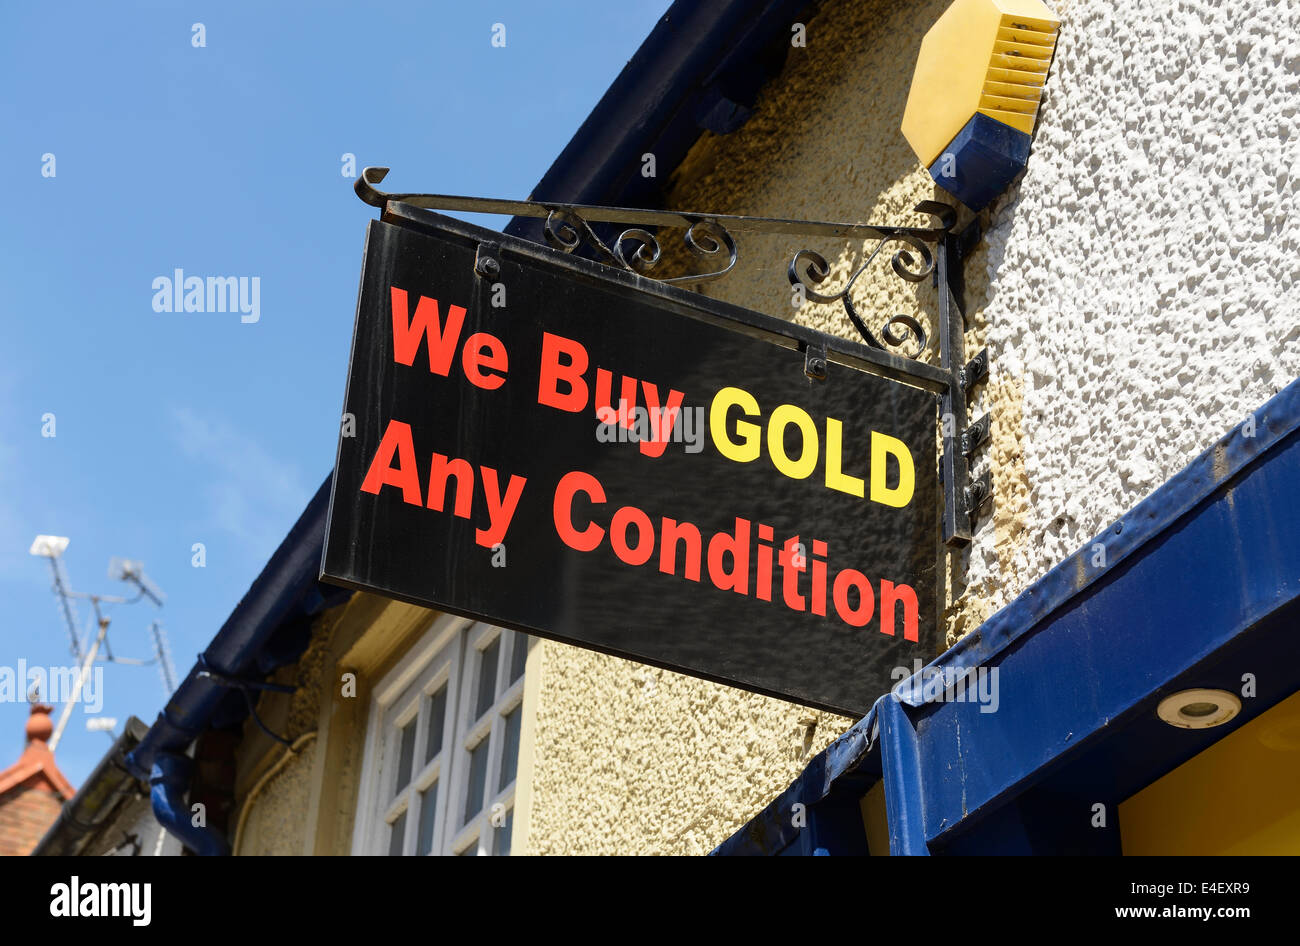 We Buy Gold - Any Condition - Stock Image